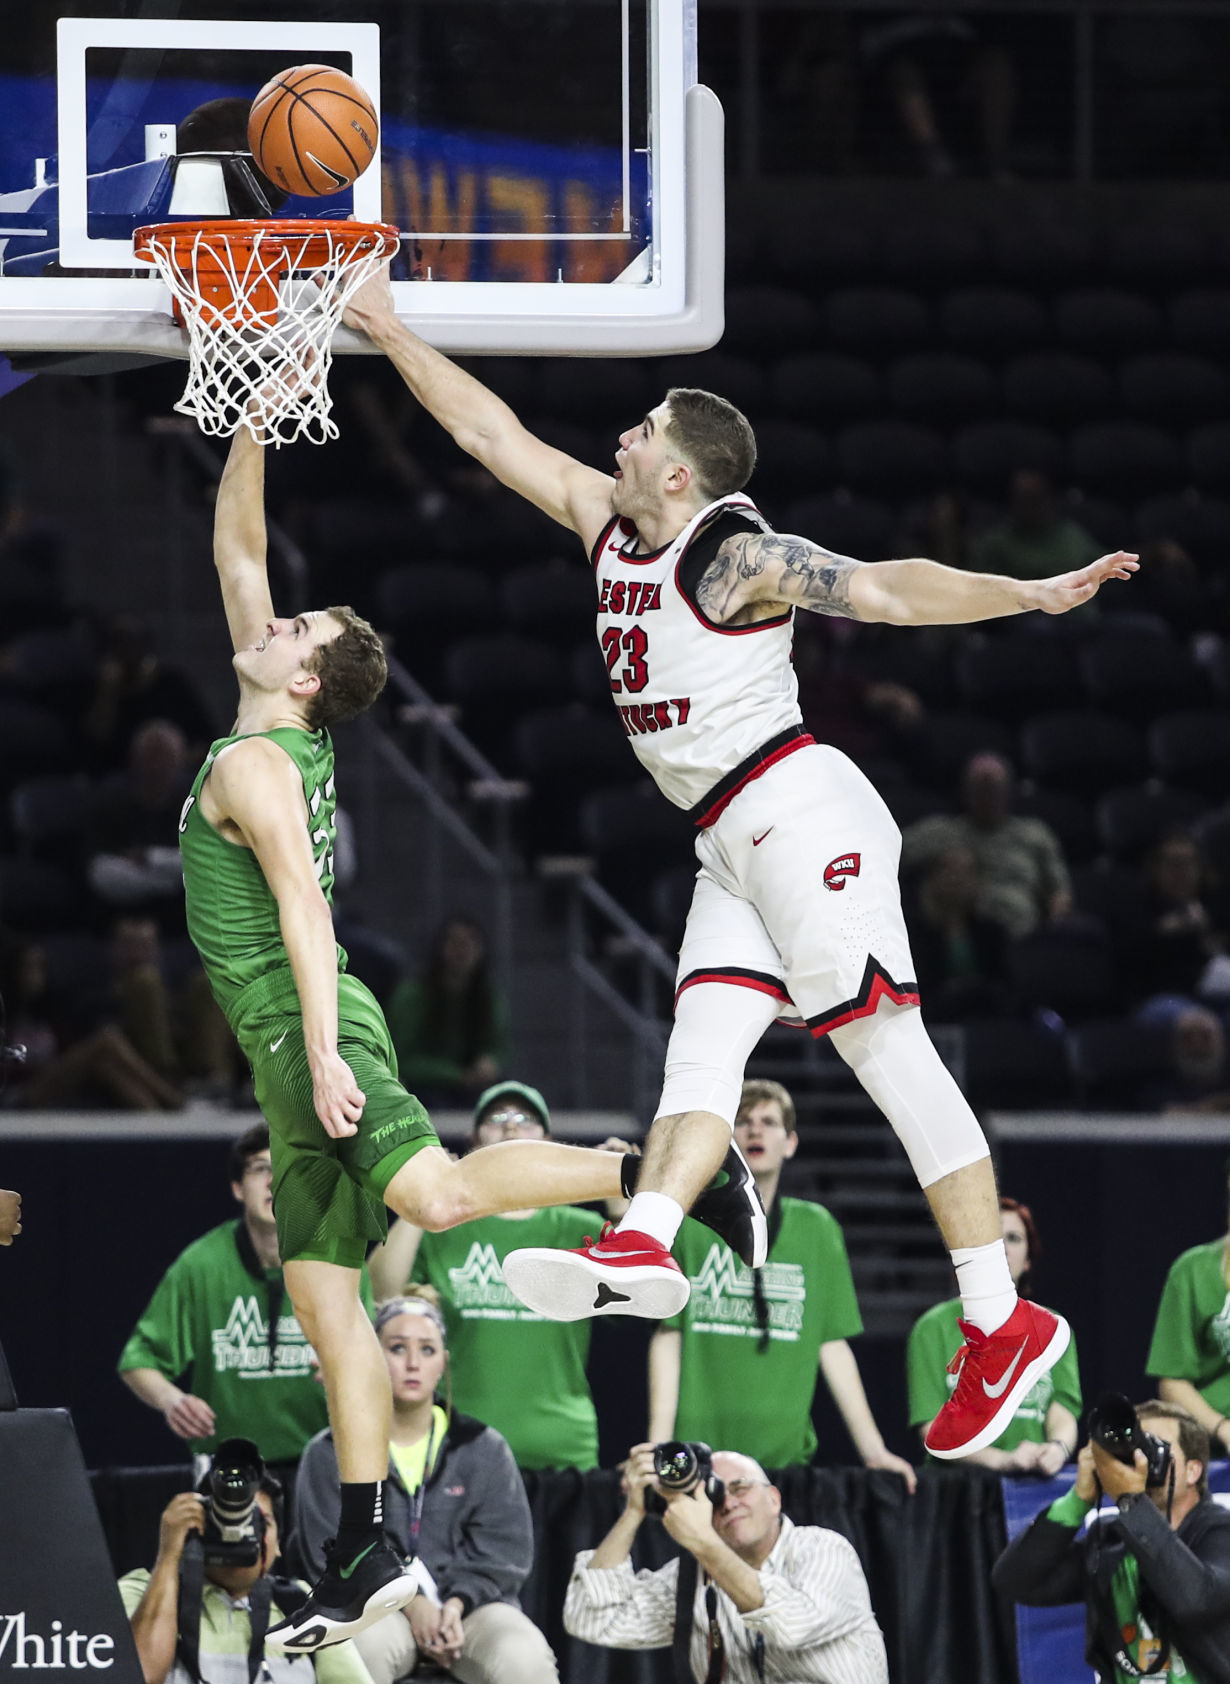 WKU loses 67-66 to Marshall in Conference USA Championship